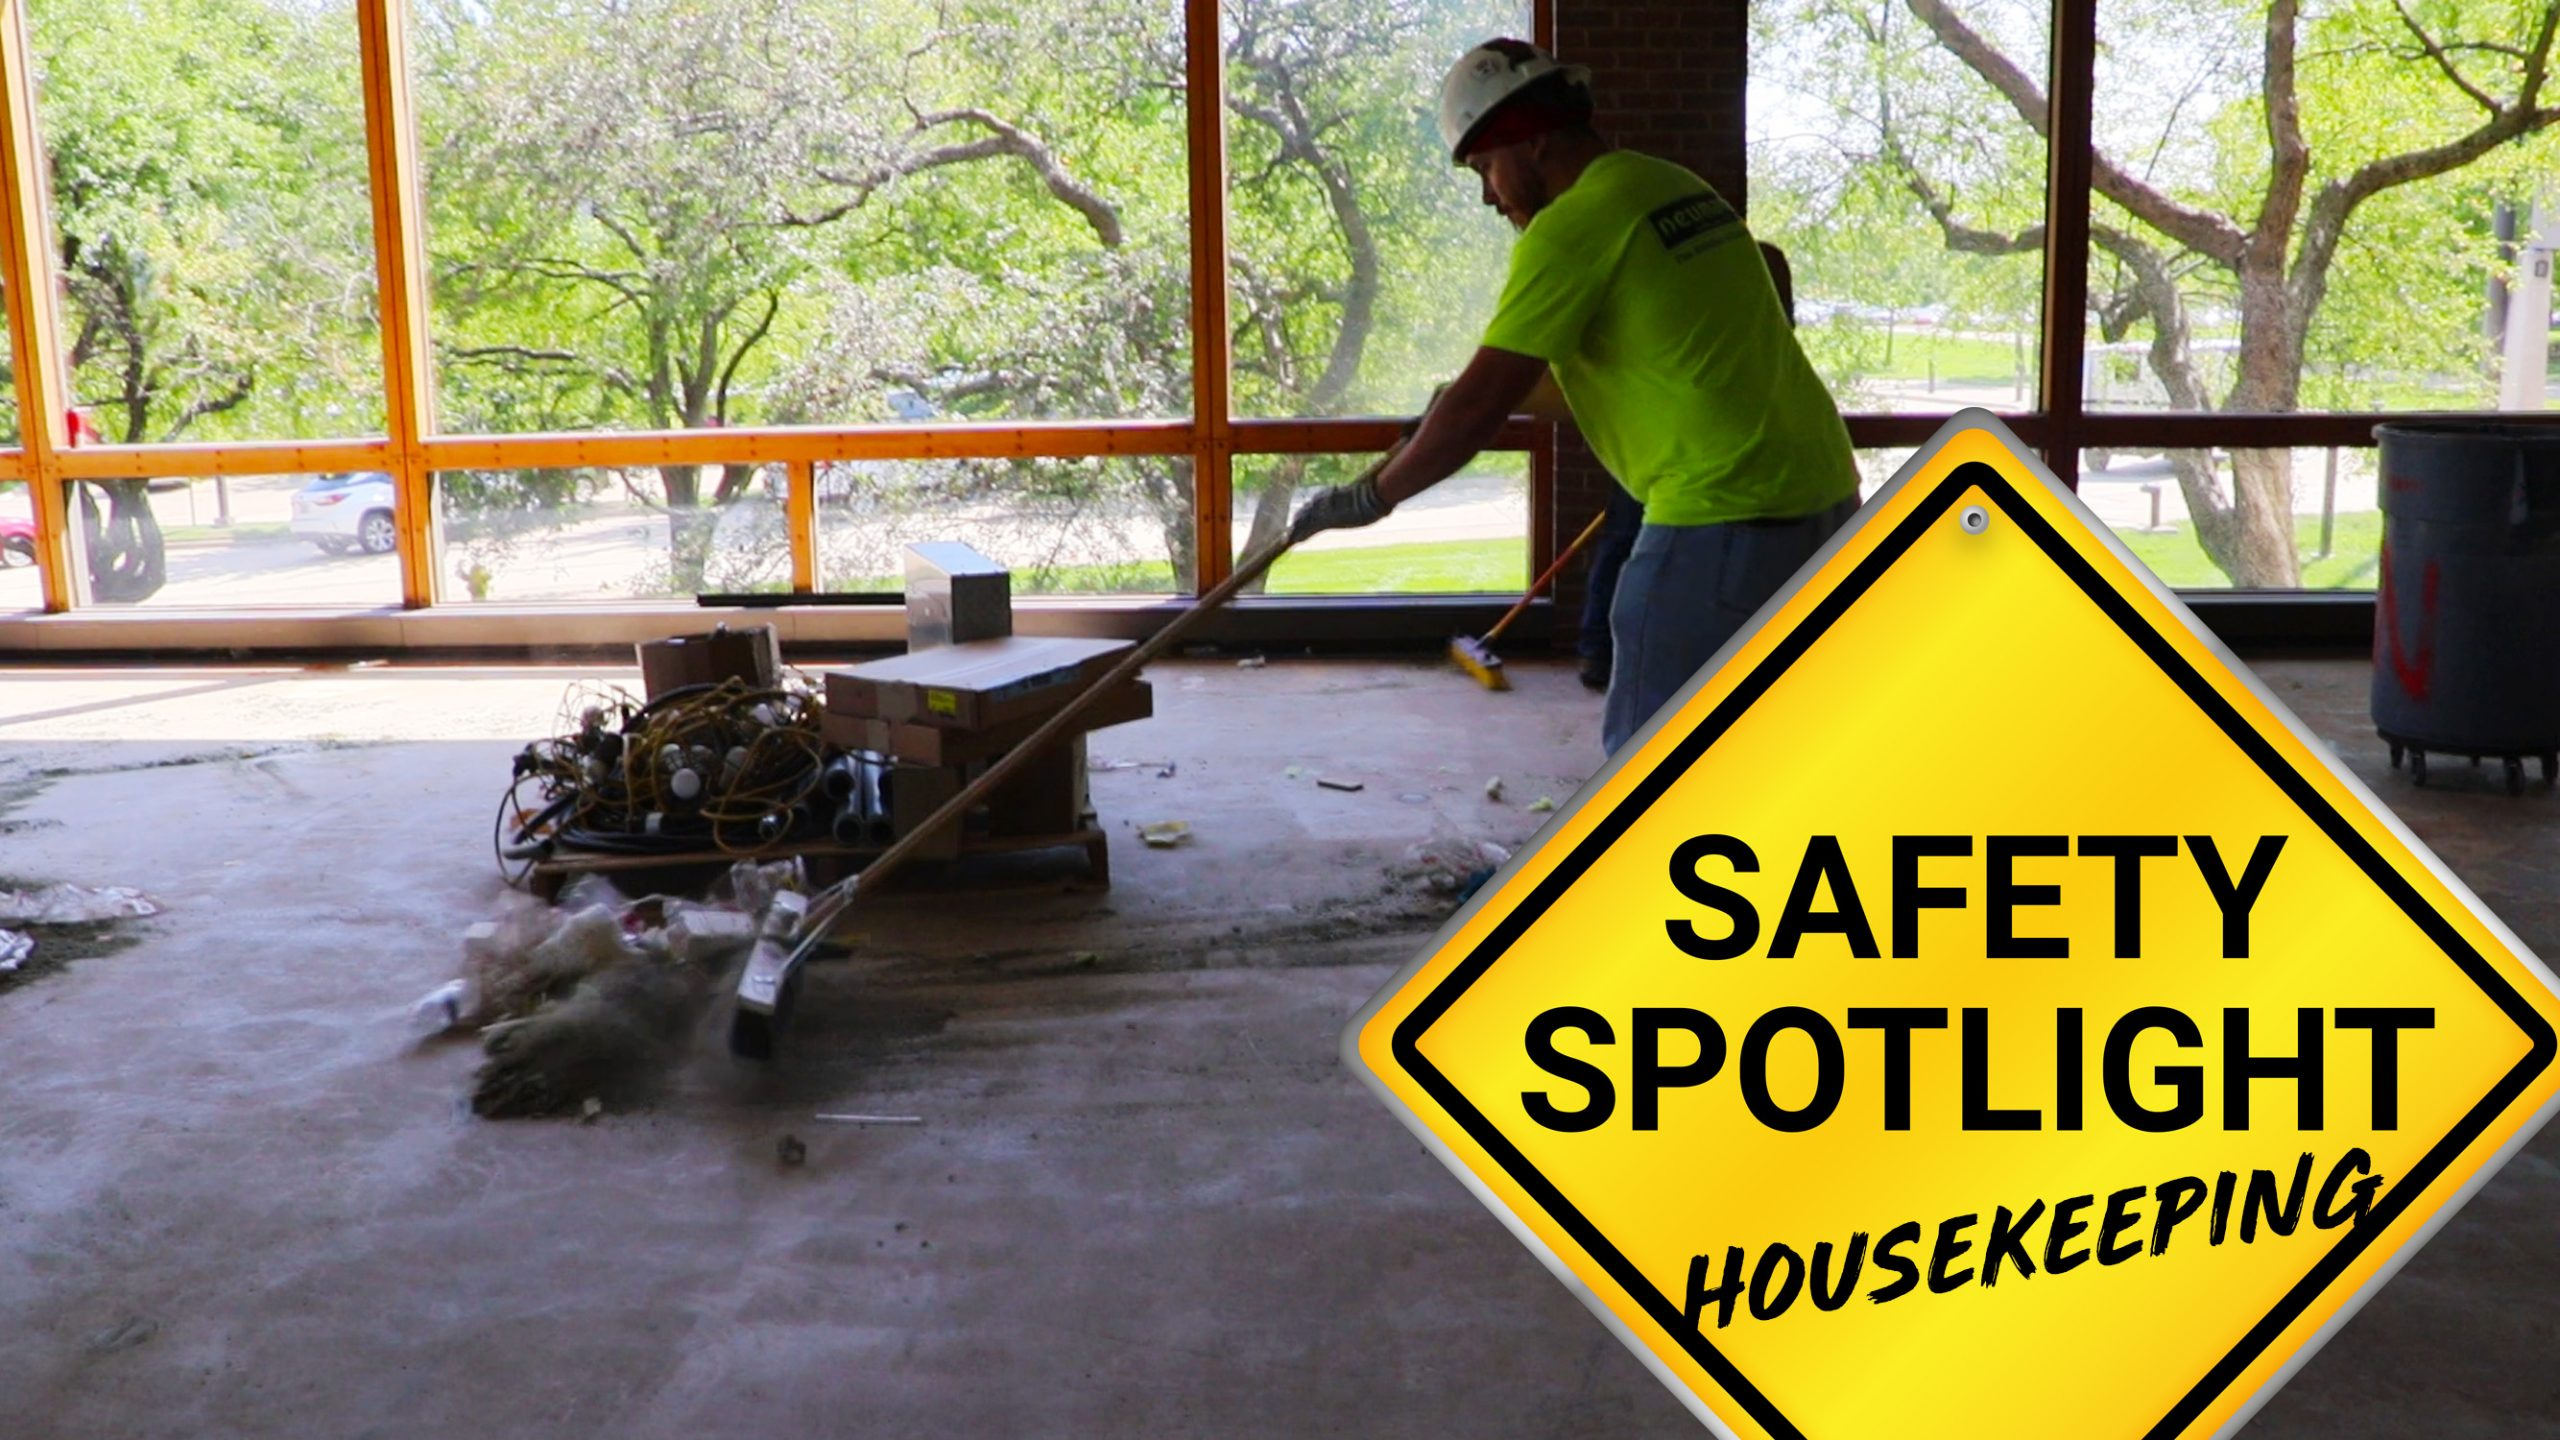 Safety Spotlight: Housekeeping